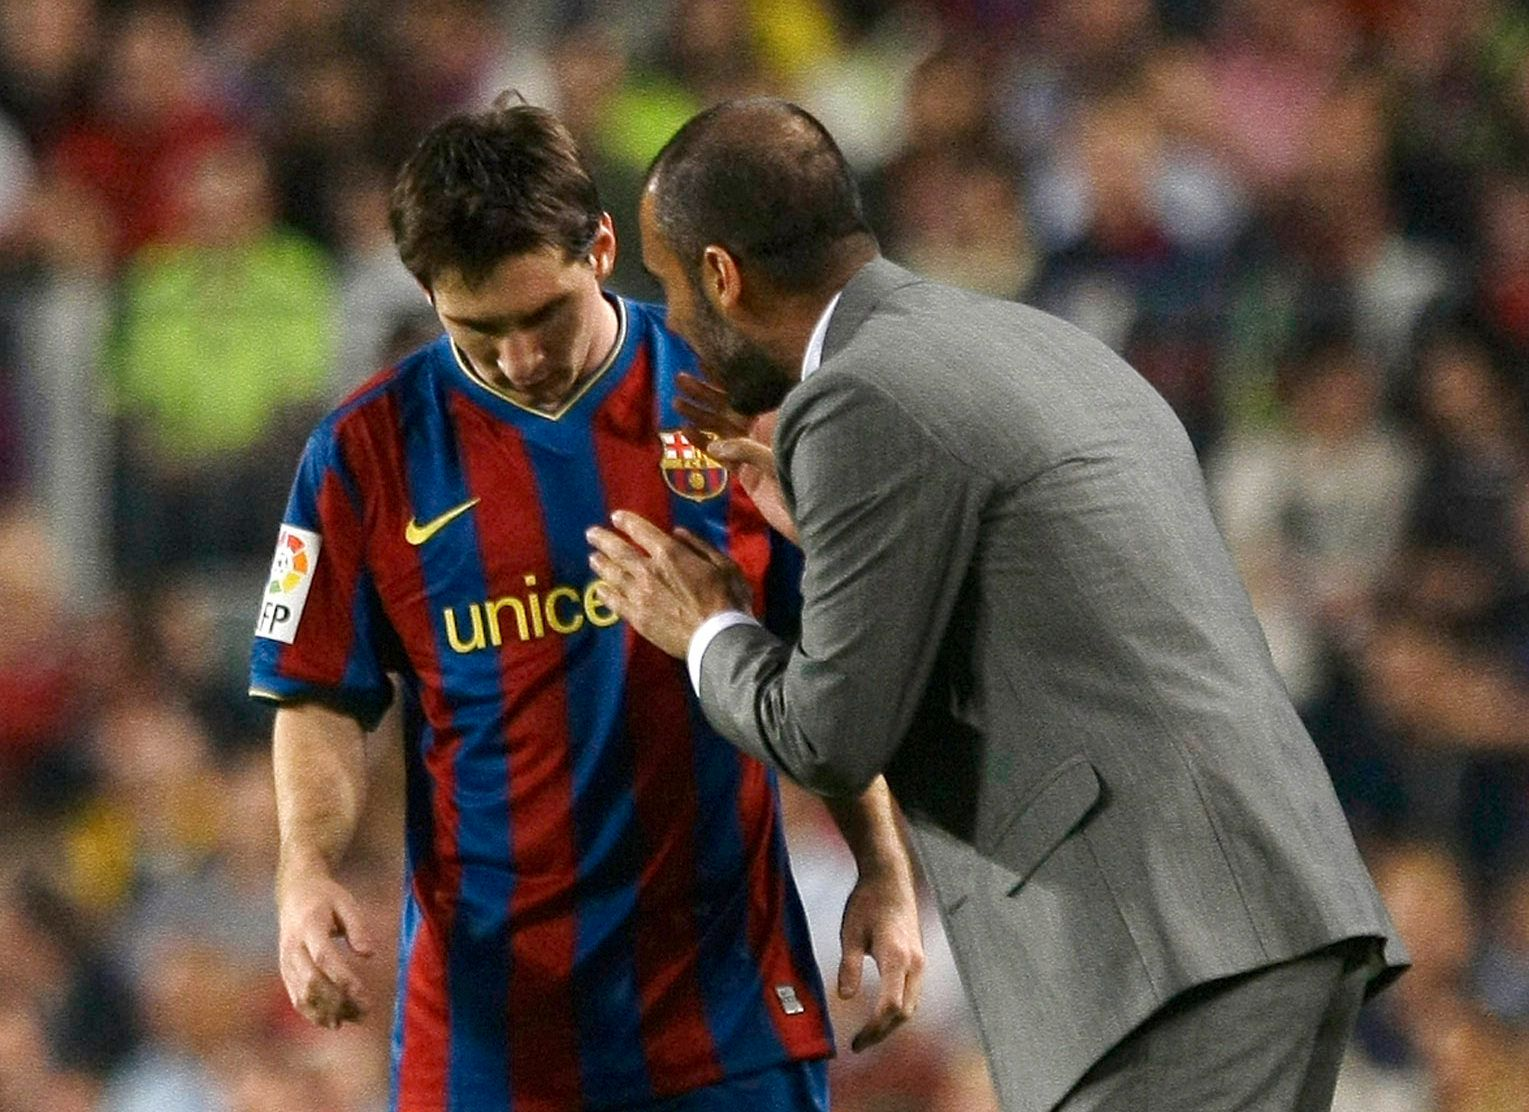 Barcelona's coach Pep Guardiola speaks to Lionel Messi during their Spanish first division soccer match against Zaragoza at Nou Camp stadium in Barcelona